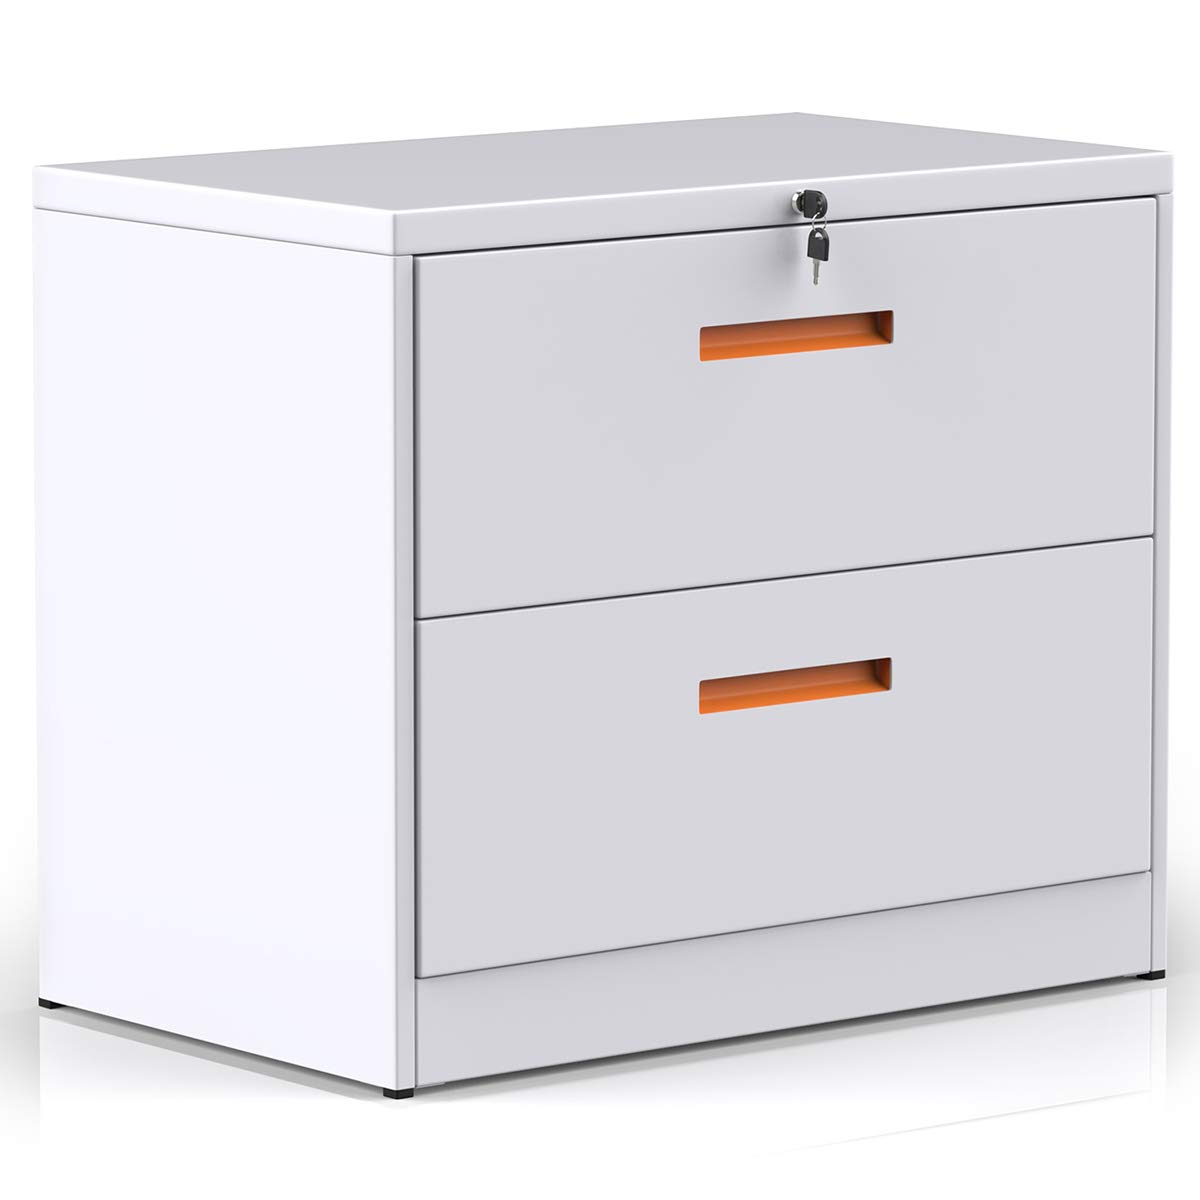 2 Drawers Lateral File Cabinet with Lock, Lockable White Metal Filing Cabinet for Home and Office by ModernLuxe